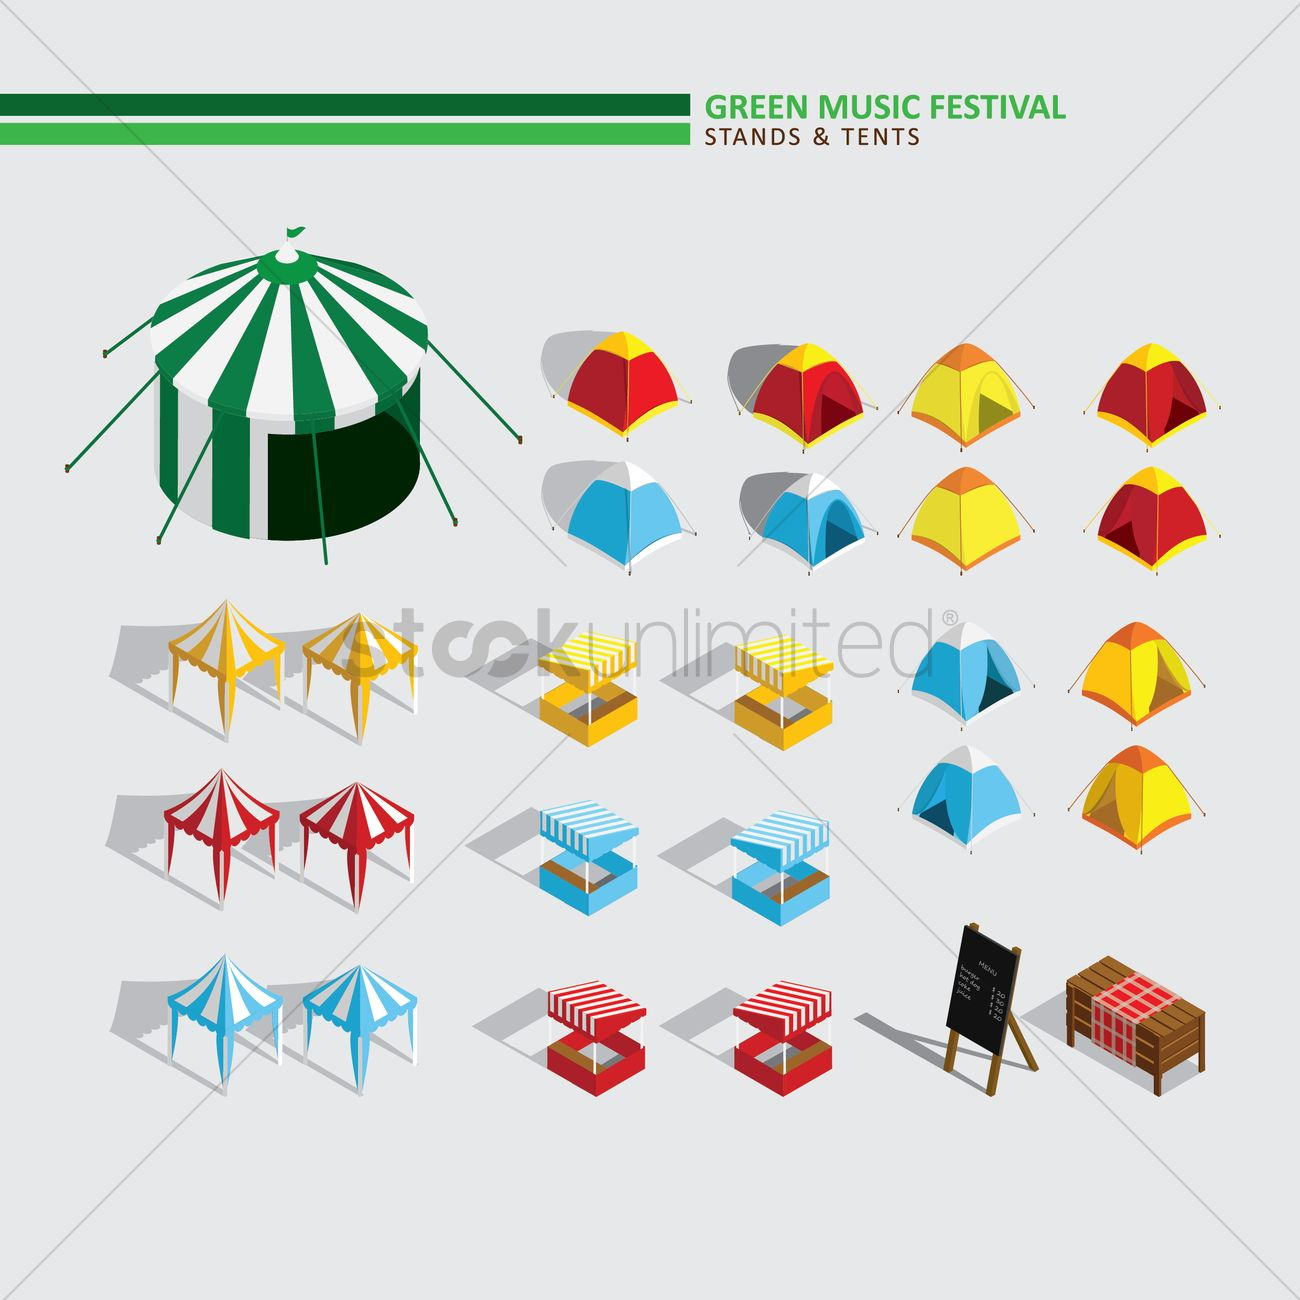 Green Music Festival Stands And Tents Vector Image